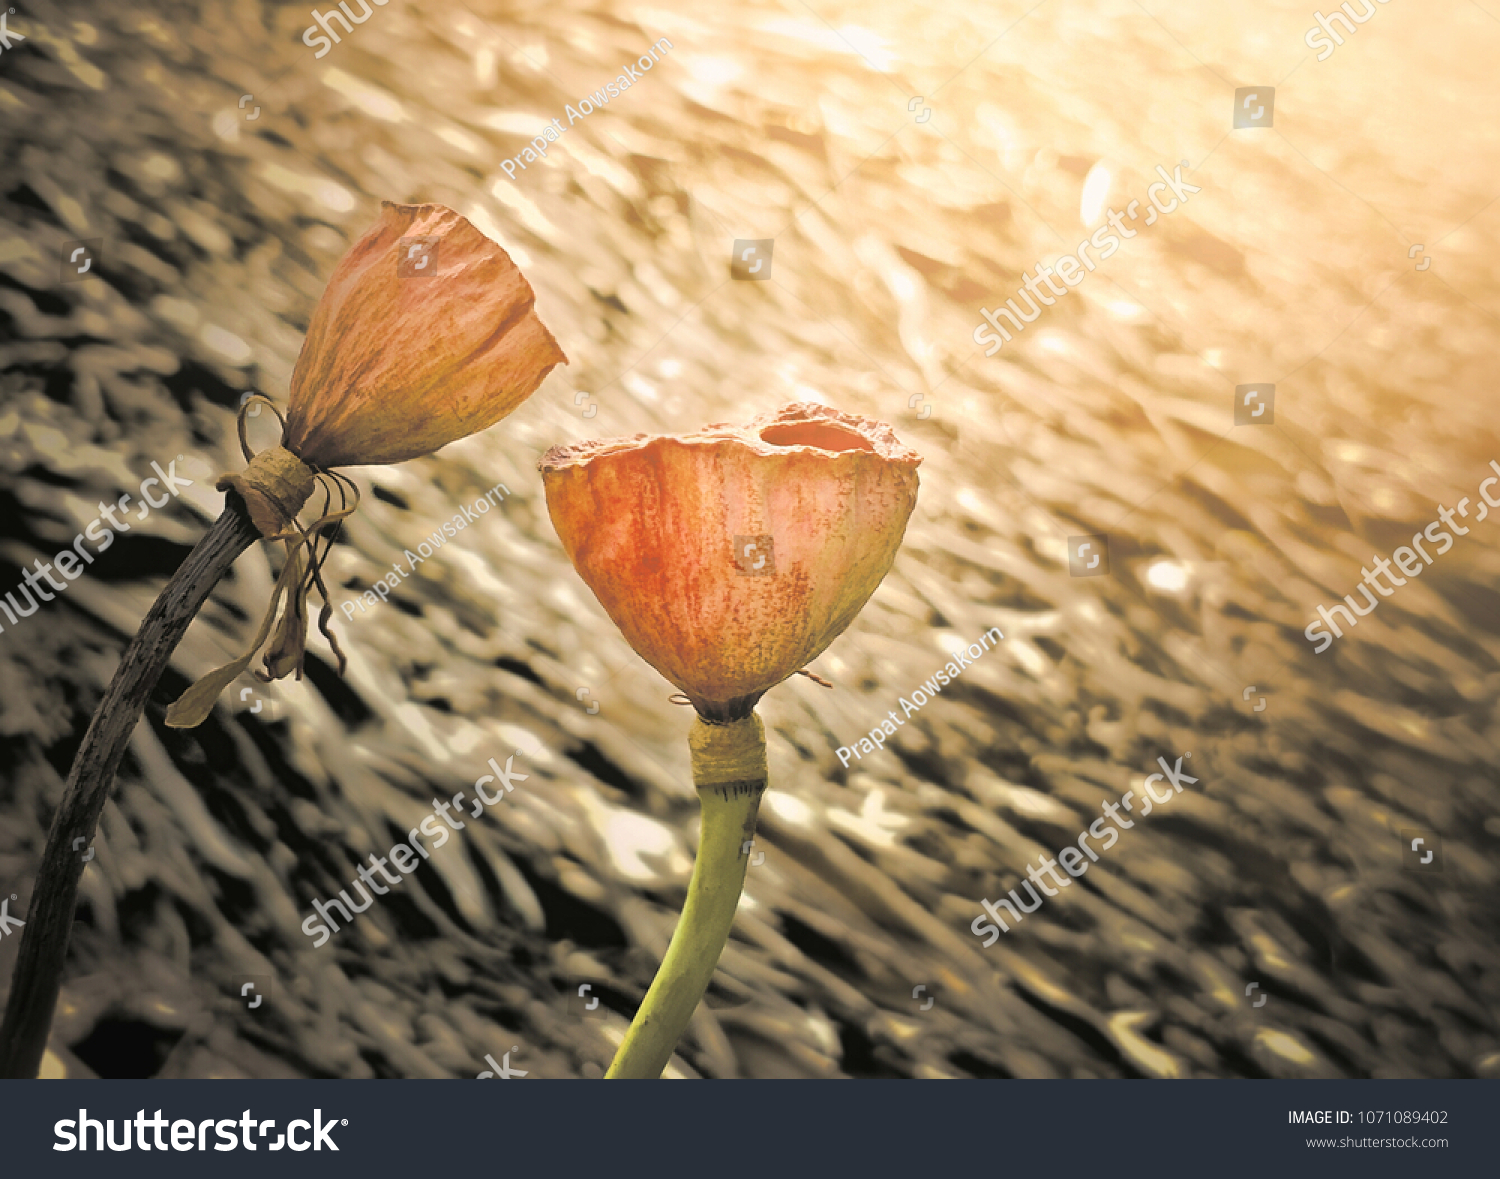 Close dried lotus flowers withered blur stock photo royalty free close dried lotus flowers withered blur stock photo royalty free 1071089402 shutterstock mightylinksfo